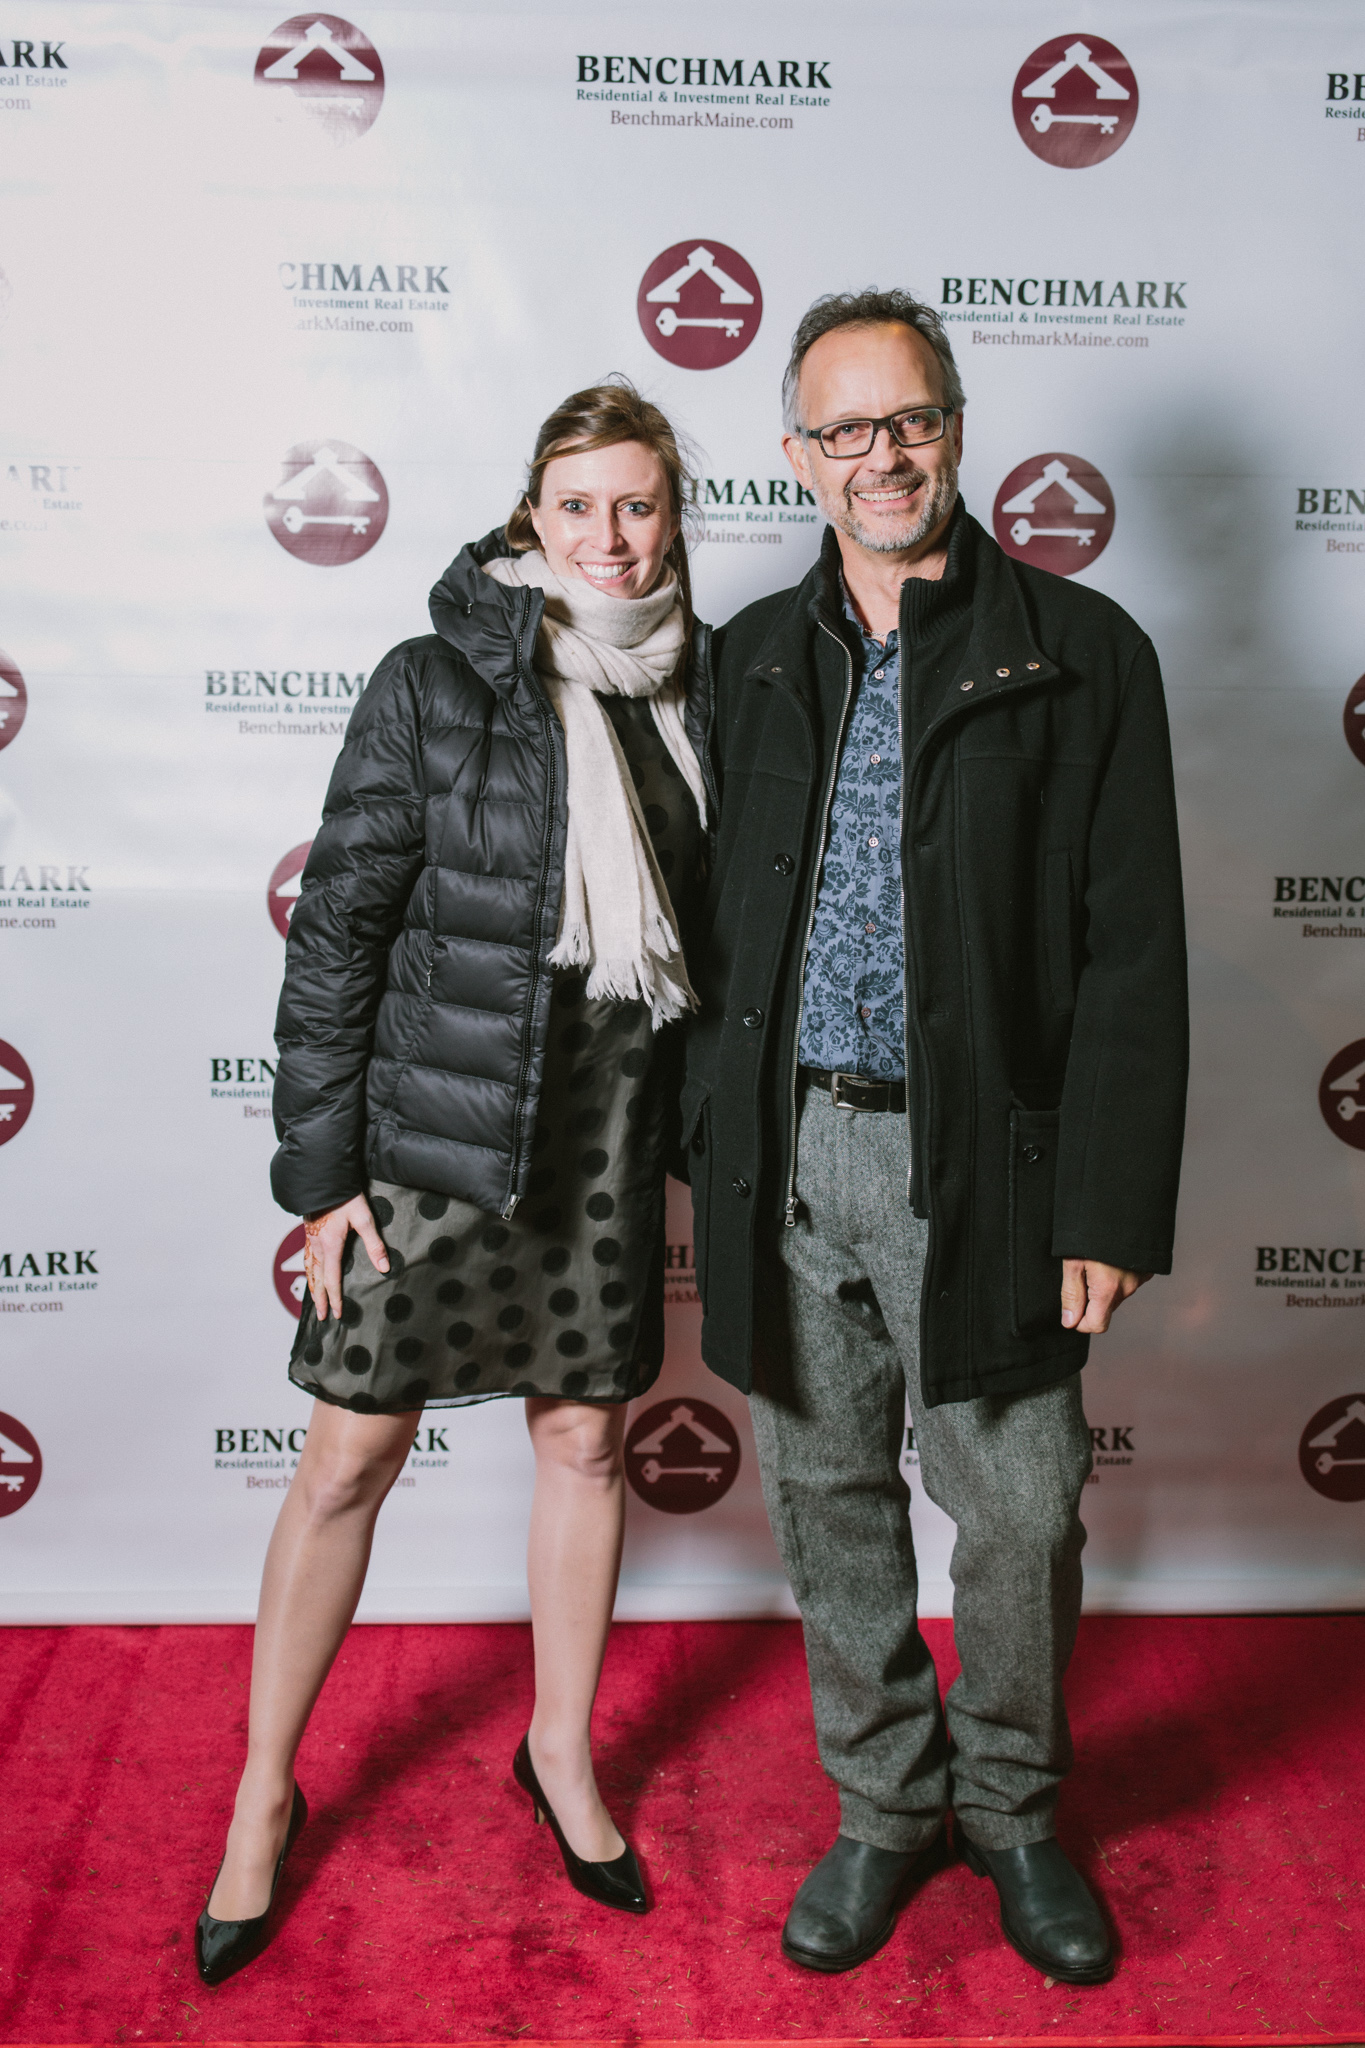 Benchmark_Holiday_Party_SR-050.jpg